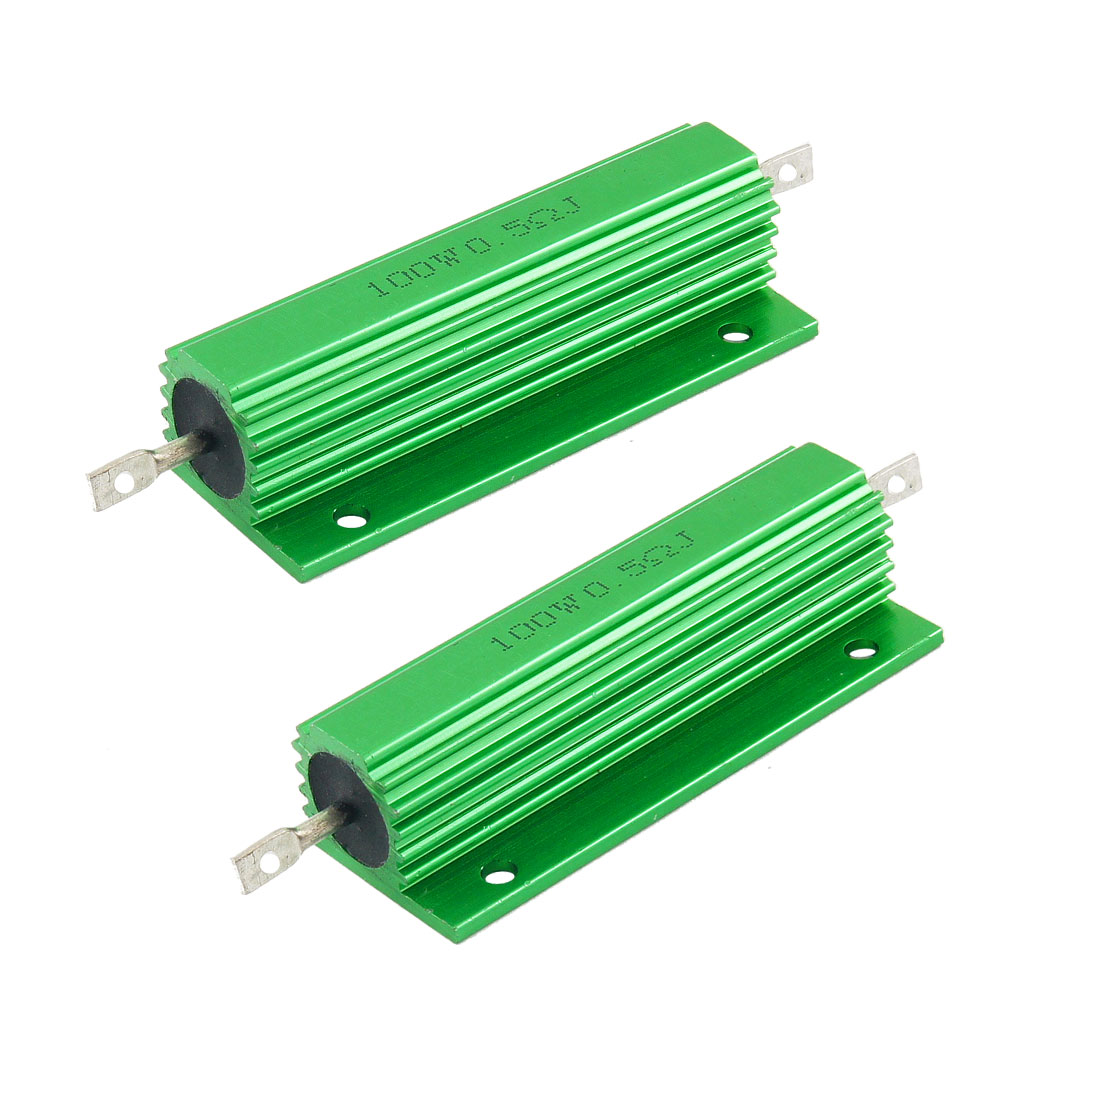 100W 0.5 Ohm Green Aluminum Housed Wirewound Resistors 2 Pcs